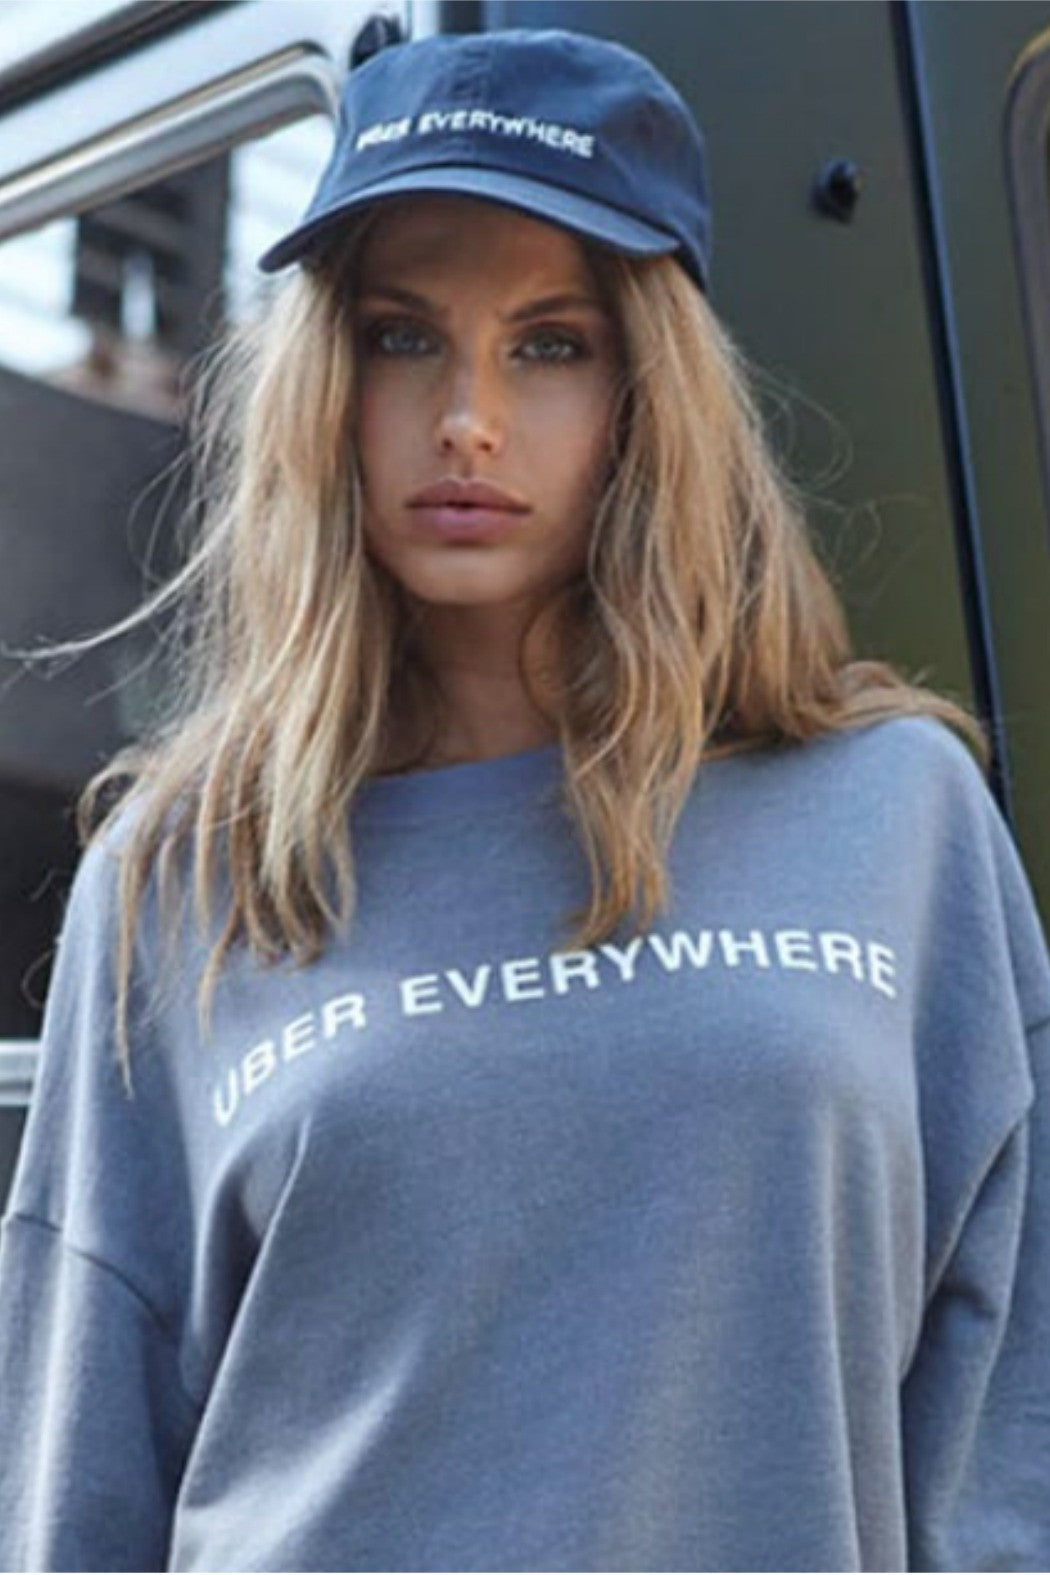 Uber Everywhere Sweatshirt - R+D Hipster Emporium | Womens & Mens Clothing